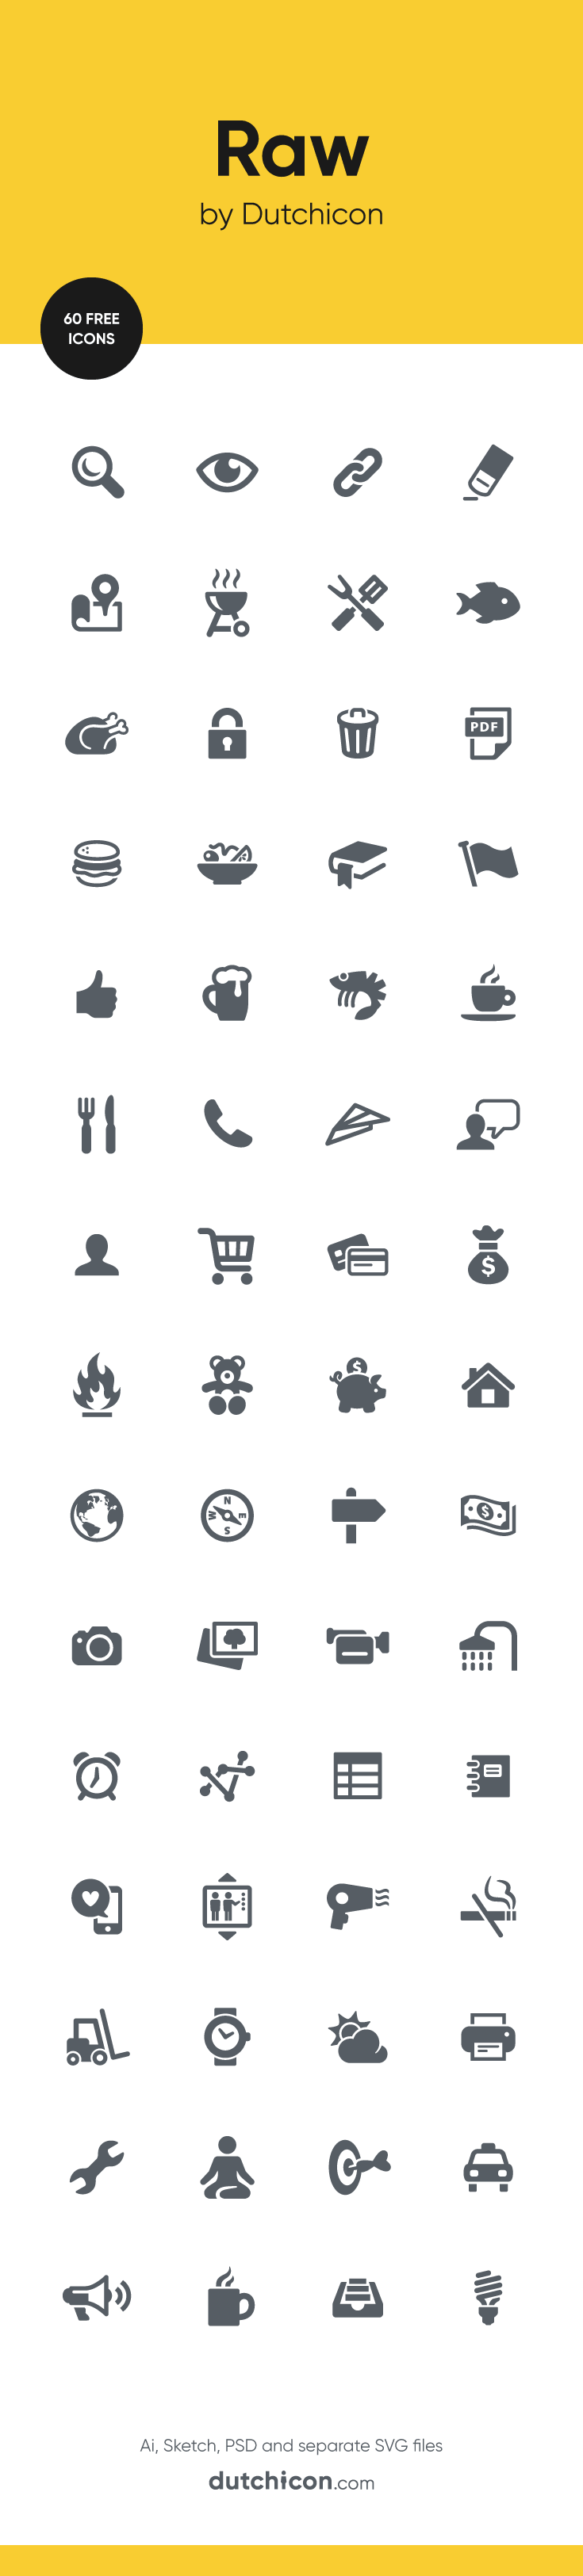 60 FREE icons in Raw style available at Dutchicon.com. Direct download: https://dutchicon-store.myshopify.com/cart/31969647954:1?channel=buy_button